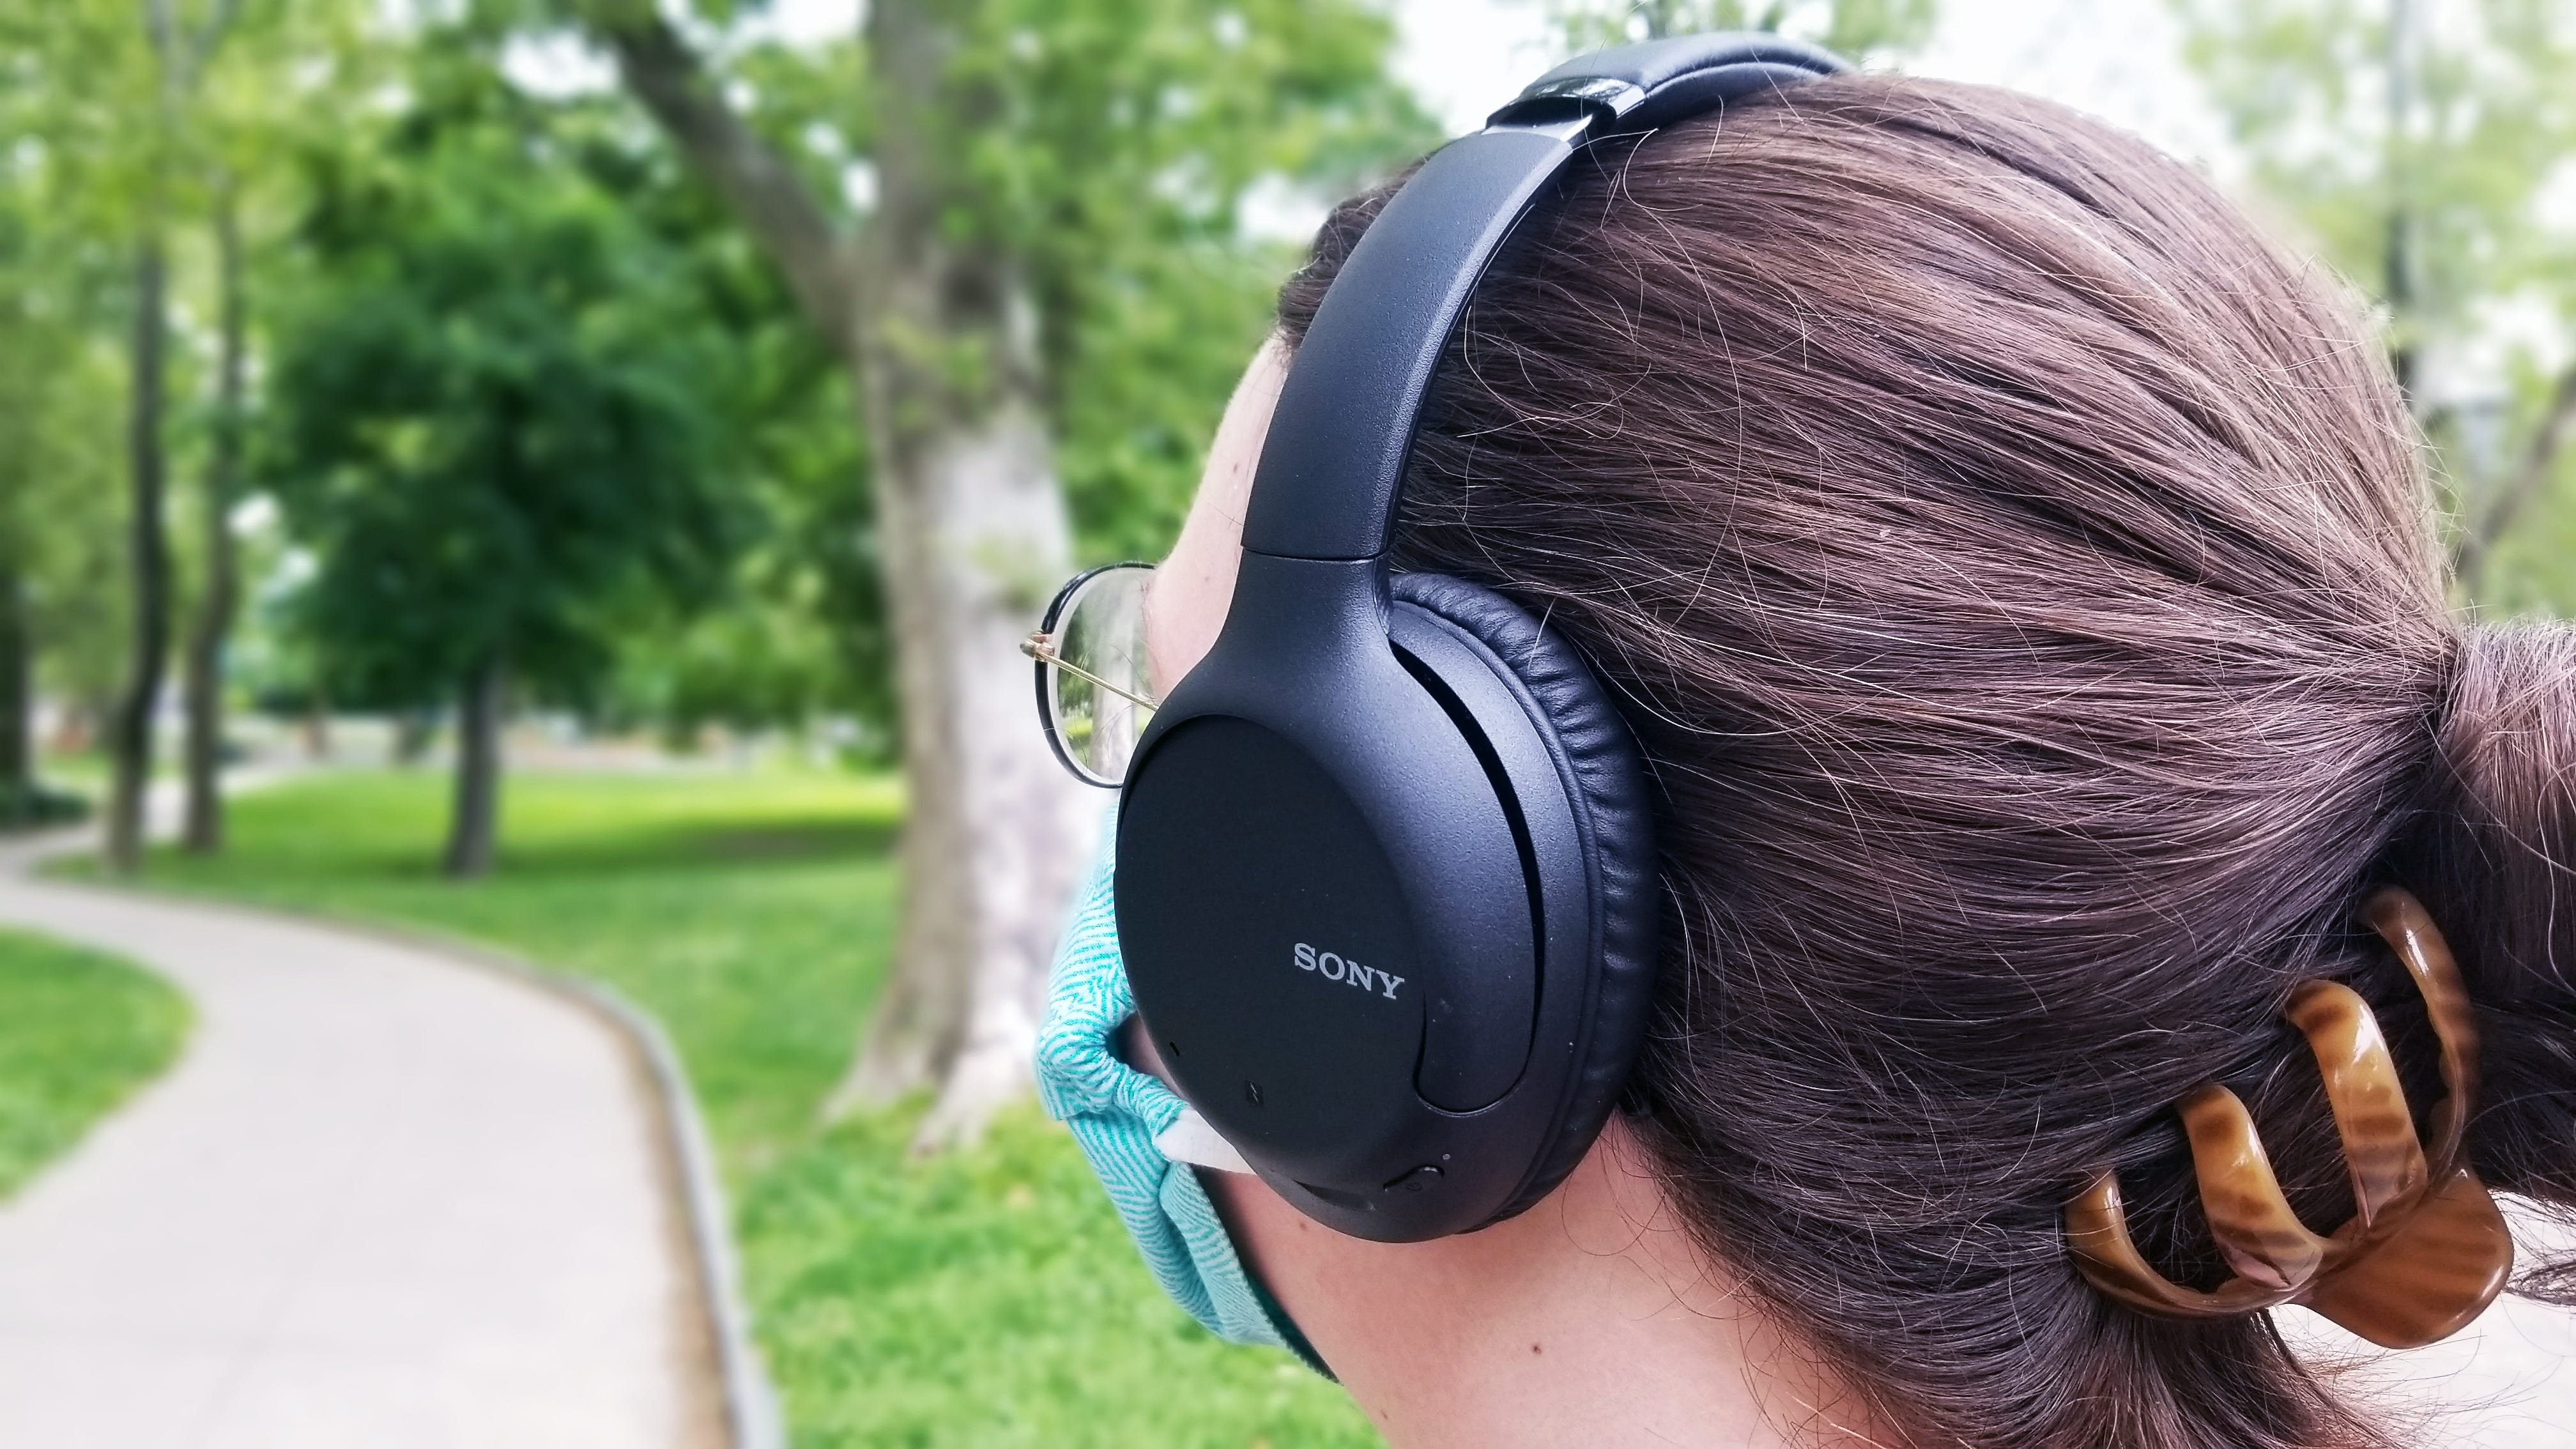 Black Friday 2020: Get these valuable Sony headphones at a huge discount